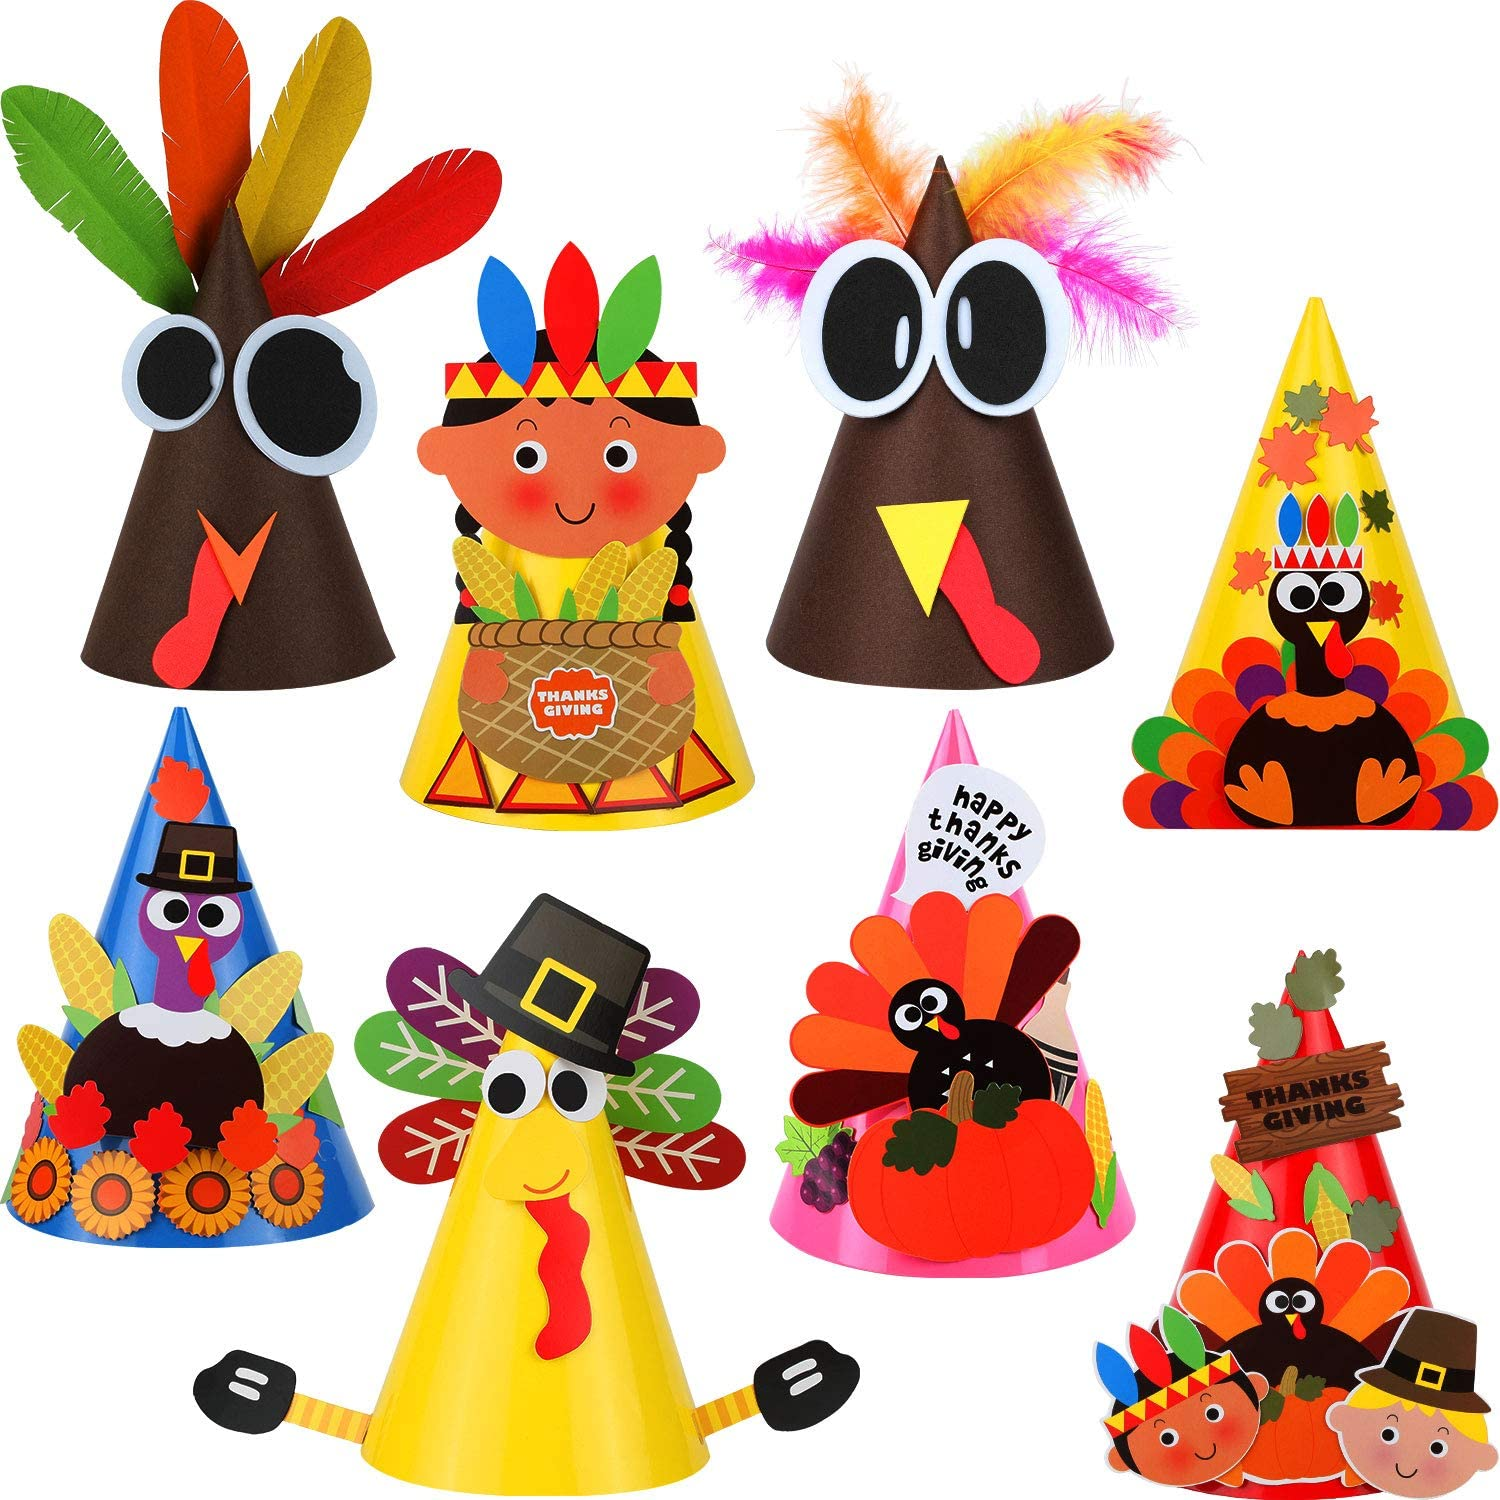 8 Pieces Thanksgiving Turkey Craft Kit Party Hat Craft Fun Celebration Kit for Thanksgiving DIY Party Game Decoration, 8 Styles